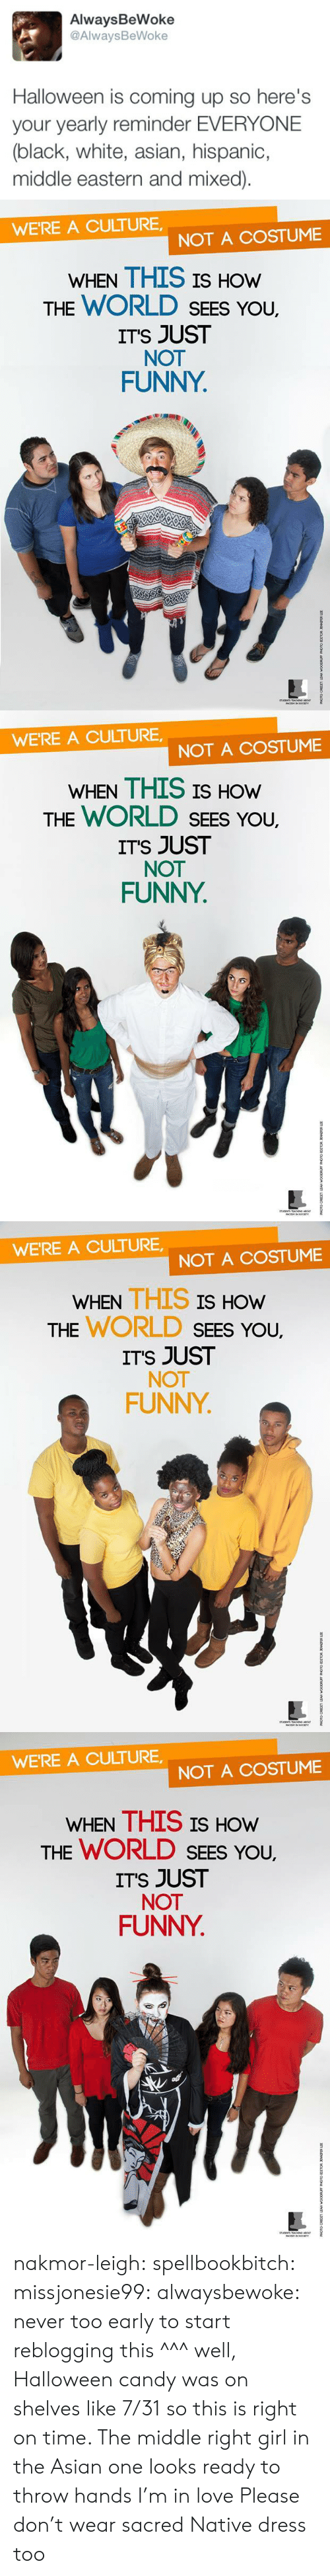 Asian, Candy, and Funny: AlwaysBeWoke  @AlwaysBeWoke  Halloween is coming up so here's  your yearly reminder EVERYONE  (black, white, asian, hispanic,  middle eastern and mixed)   WE'RE A CULTURE  NOT A COSTUME  WHEN THIS IS HOW  THE WORLD SEES YoU.  ITS JUST  NOT  FUNNY   WE'RE A CULTURE  NOT A COSTUME  WHEN THIS IS HOW  THE WORLD SEES YoU.  ITS JUST  NOT  FUNNY   WE'RE A CULTURE,  NOT A COSTUME  WHEN THIS IS  HOW  THE WORLD SEEs You,  ITS JUST  NOT  FUNNY   WE'RE A CULTURE  NOT A COSTUME  WHEN THIS IS HOw  THE WORLD SEES You,  ITS JUST  NOT  FUNNY nakmor-leigh: spellbookbitch:  missjonesie99:  alwaysbewoke:  never too early to start reblogging this  ^^^ well, Halloween candy was on shelves like 7/31 so this is right on time.    The middle right girl in the Asian one looks ready to throw hands I'm in love   Please don't wear sacred Native dress too